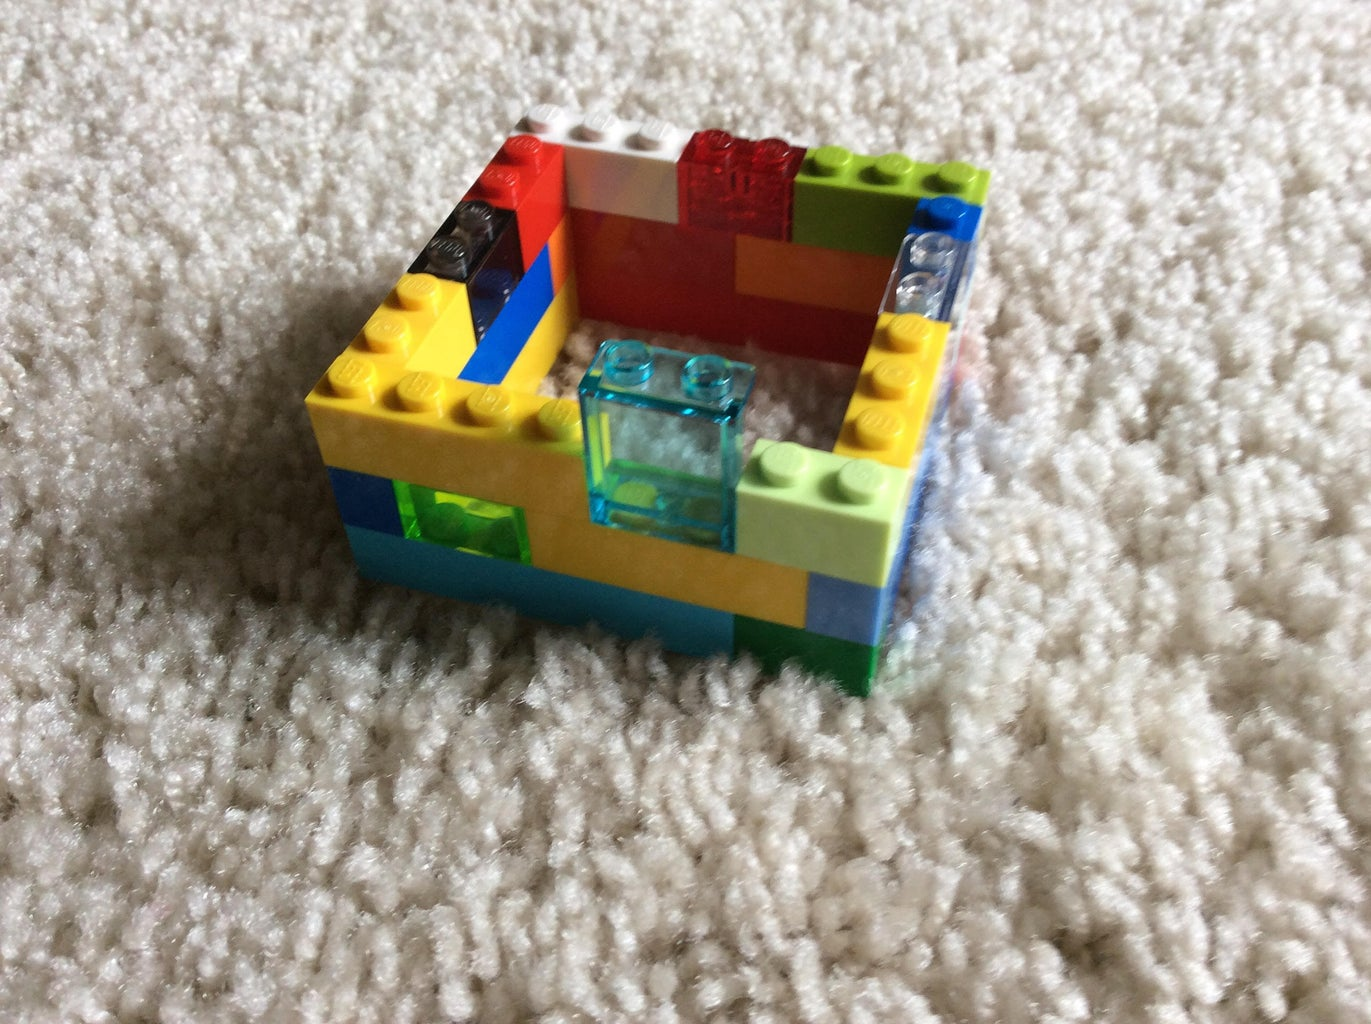 Build the Lego Top.